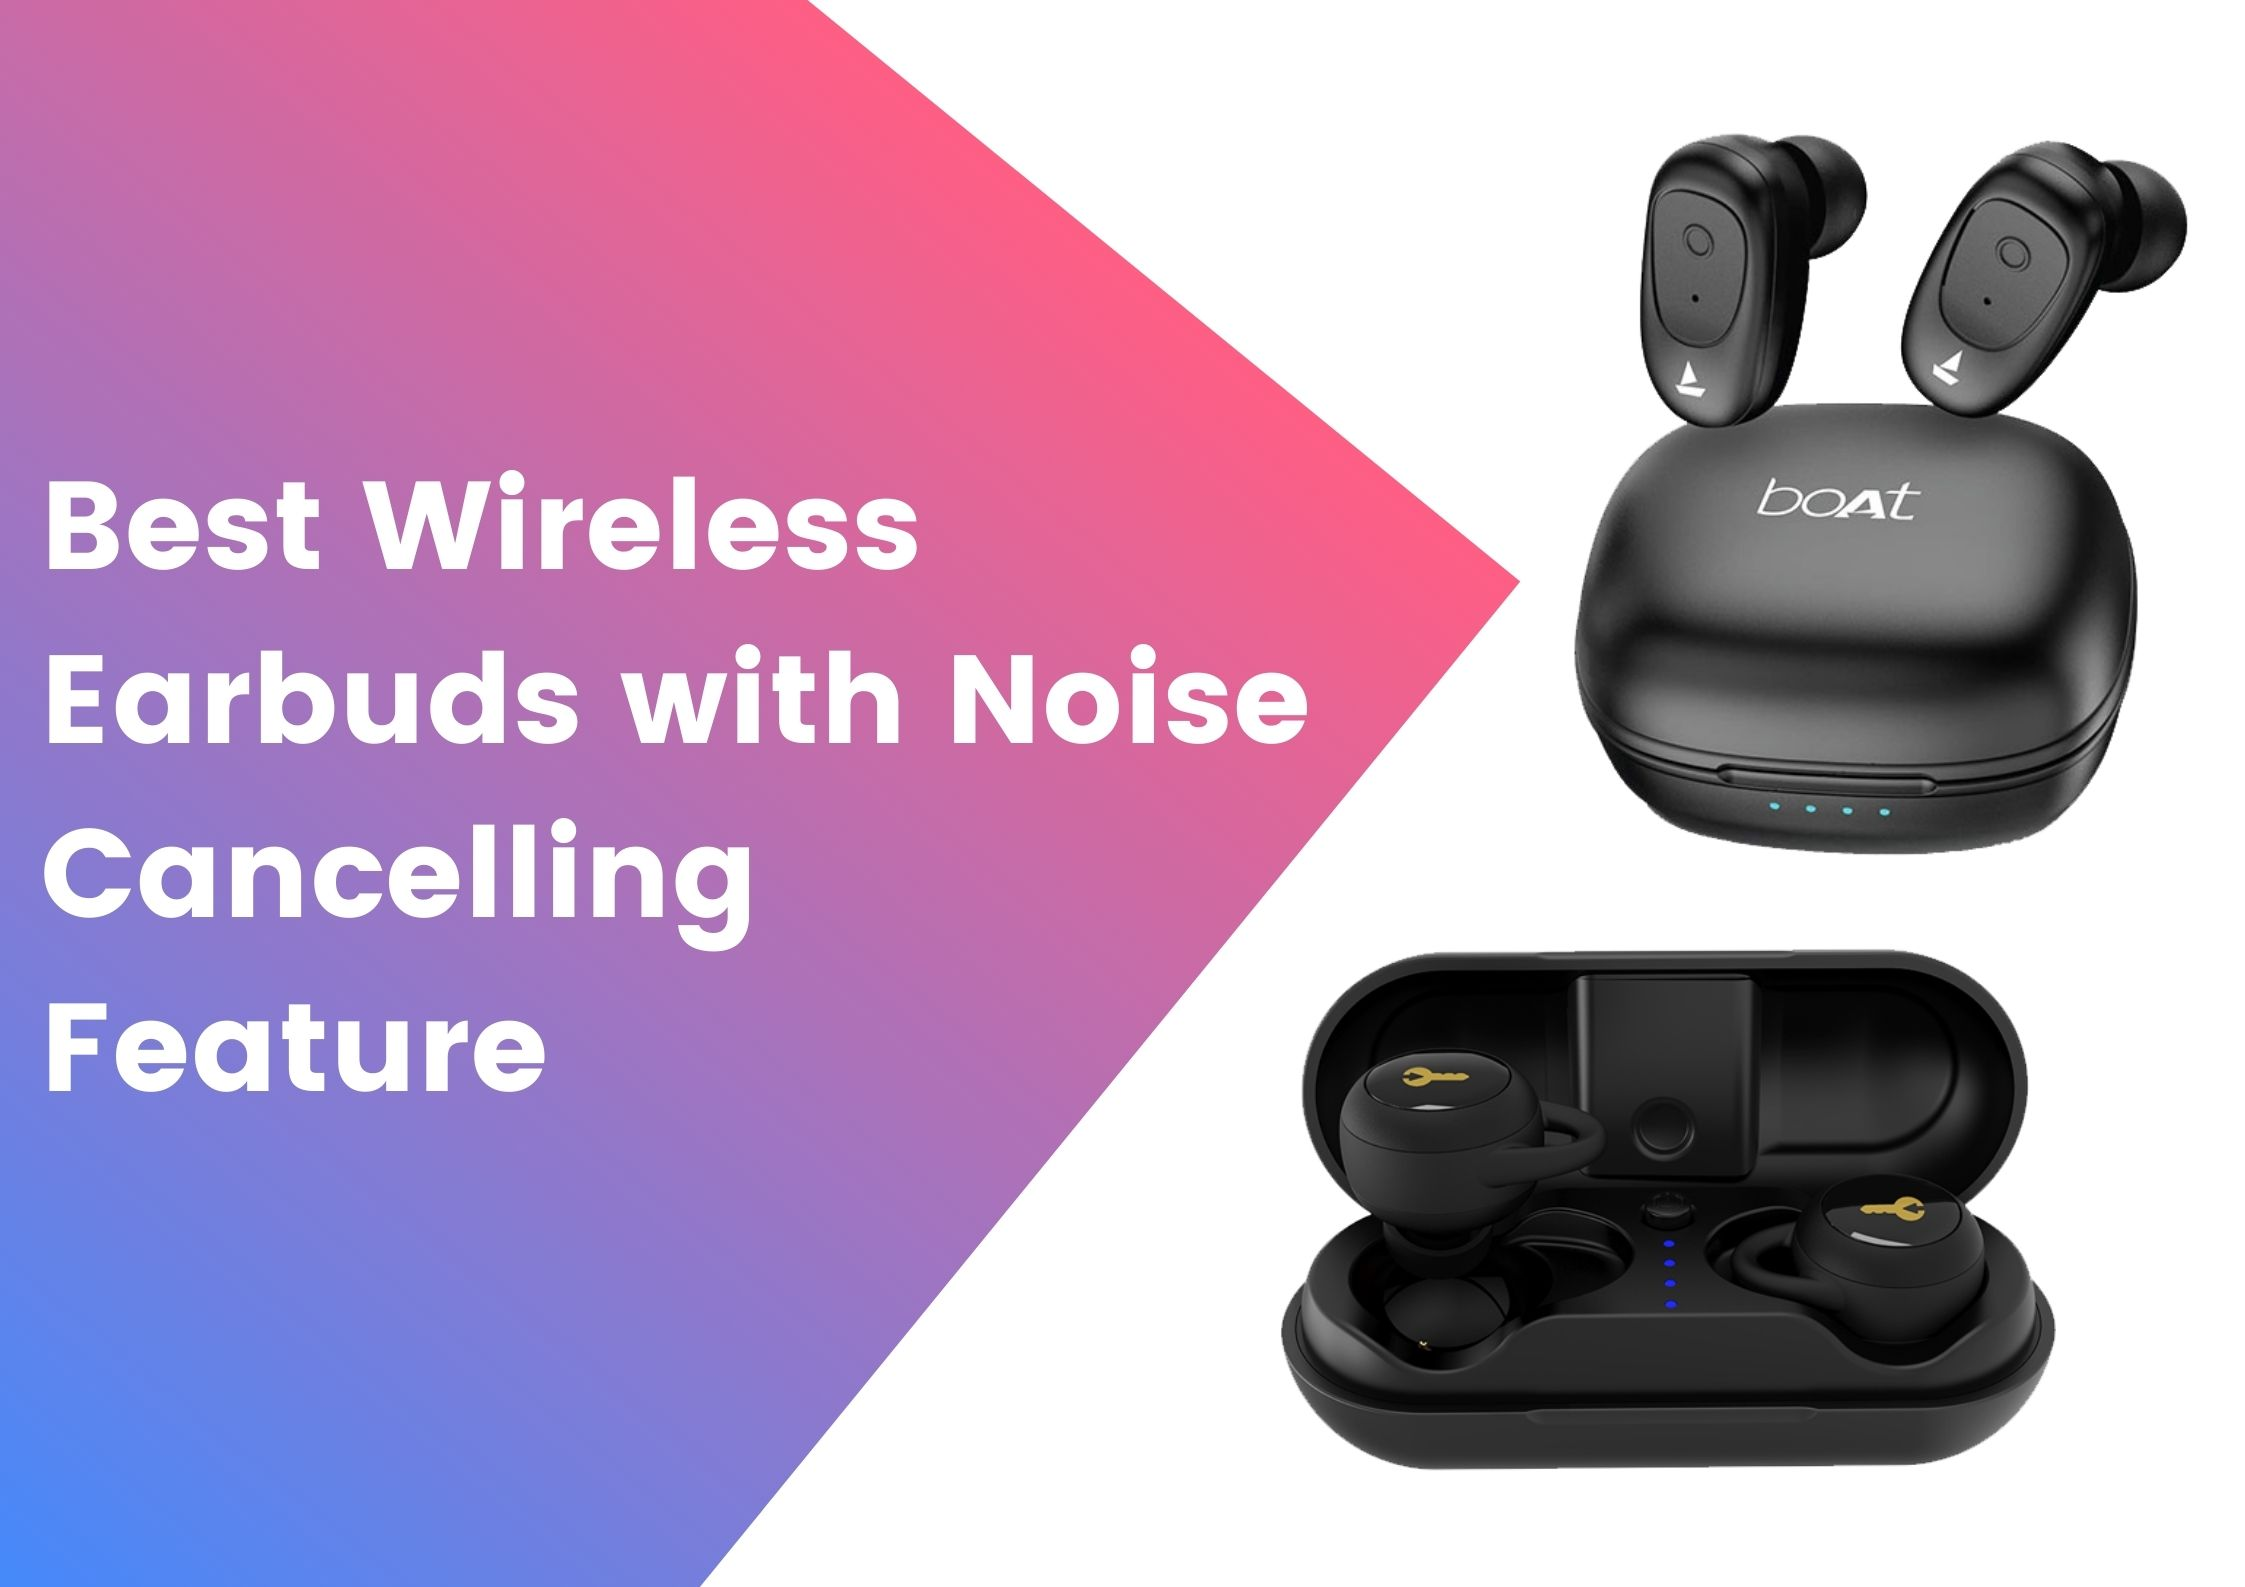 Best-Wireless-Earbuds-with-Noise-Cancelling-Feature